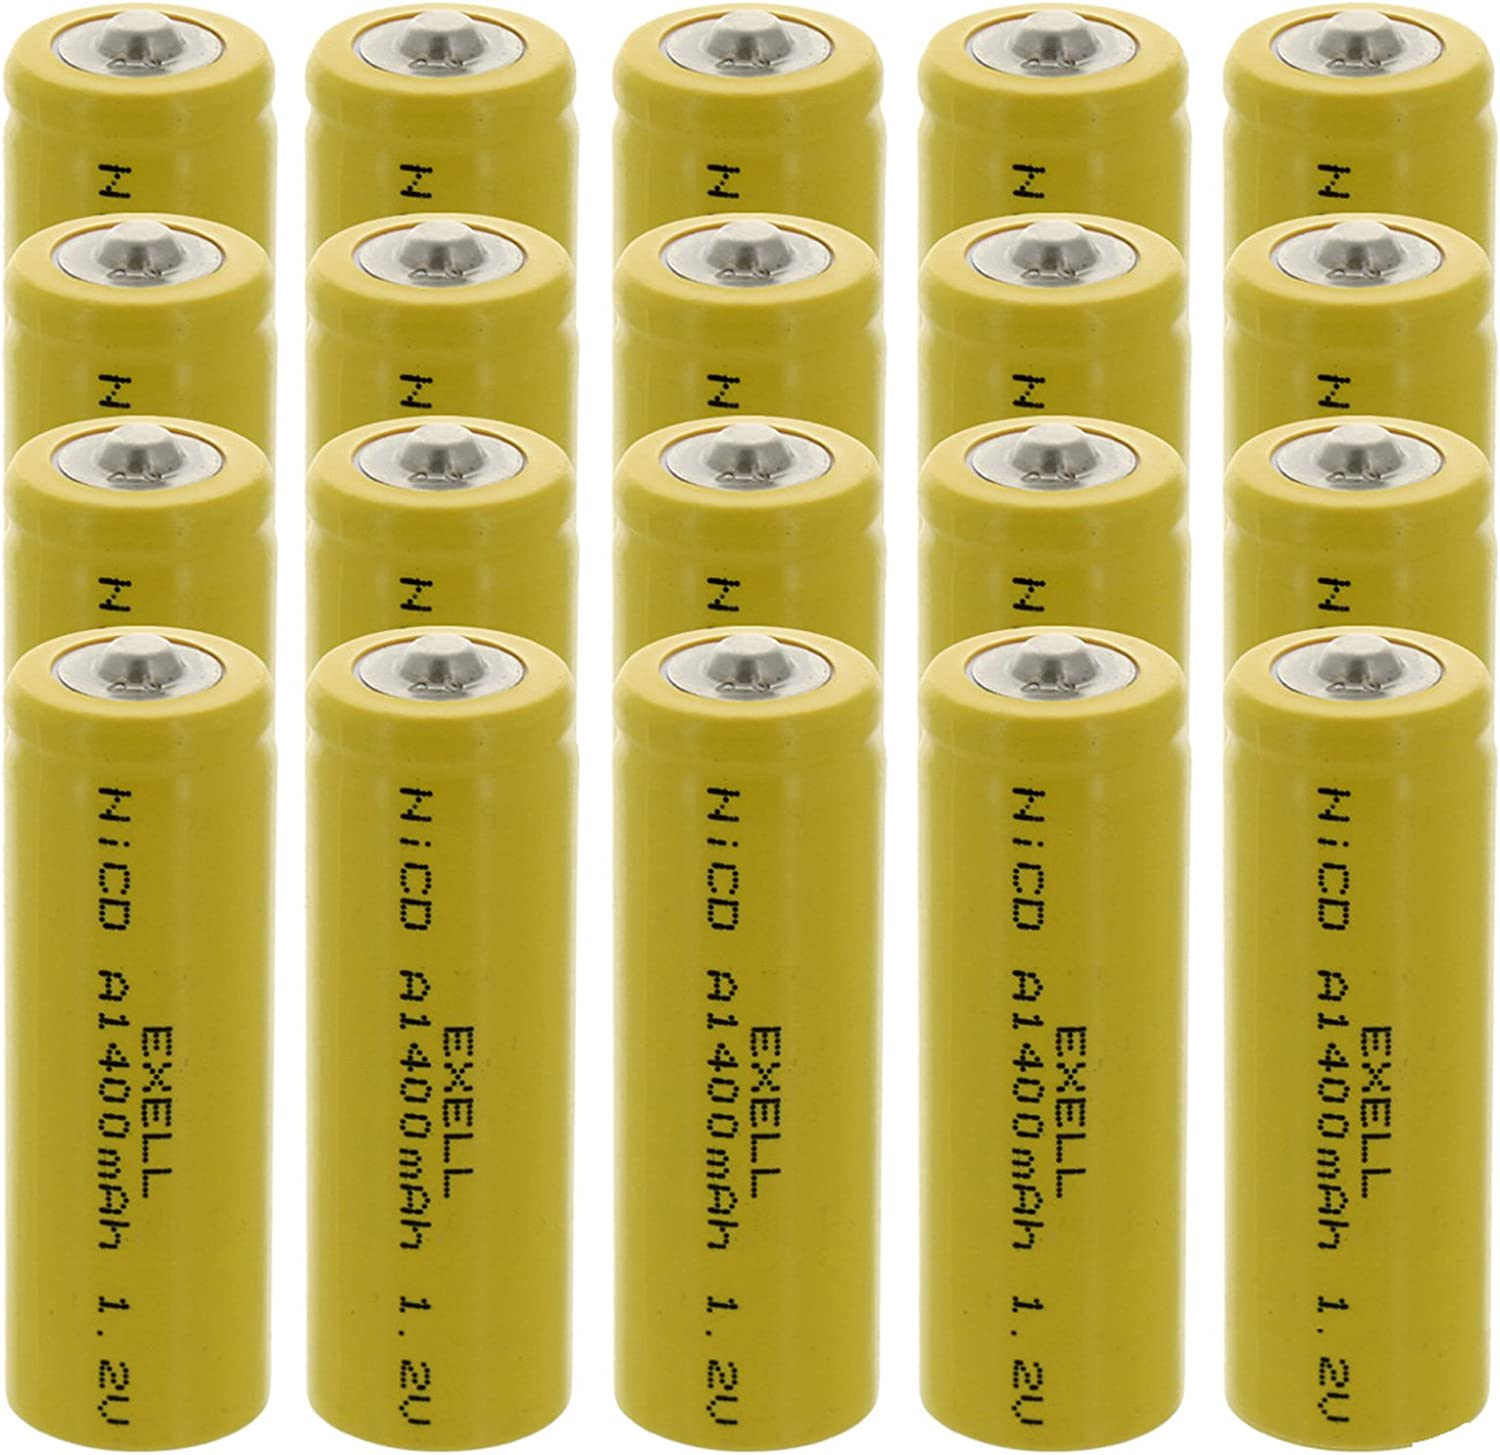 20x A Size Phoenix Mall Super beauty product restock quality top 1.2V NiCD Button Top Batteries elect for Rechargeable